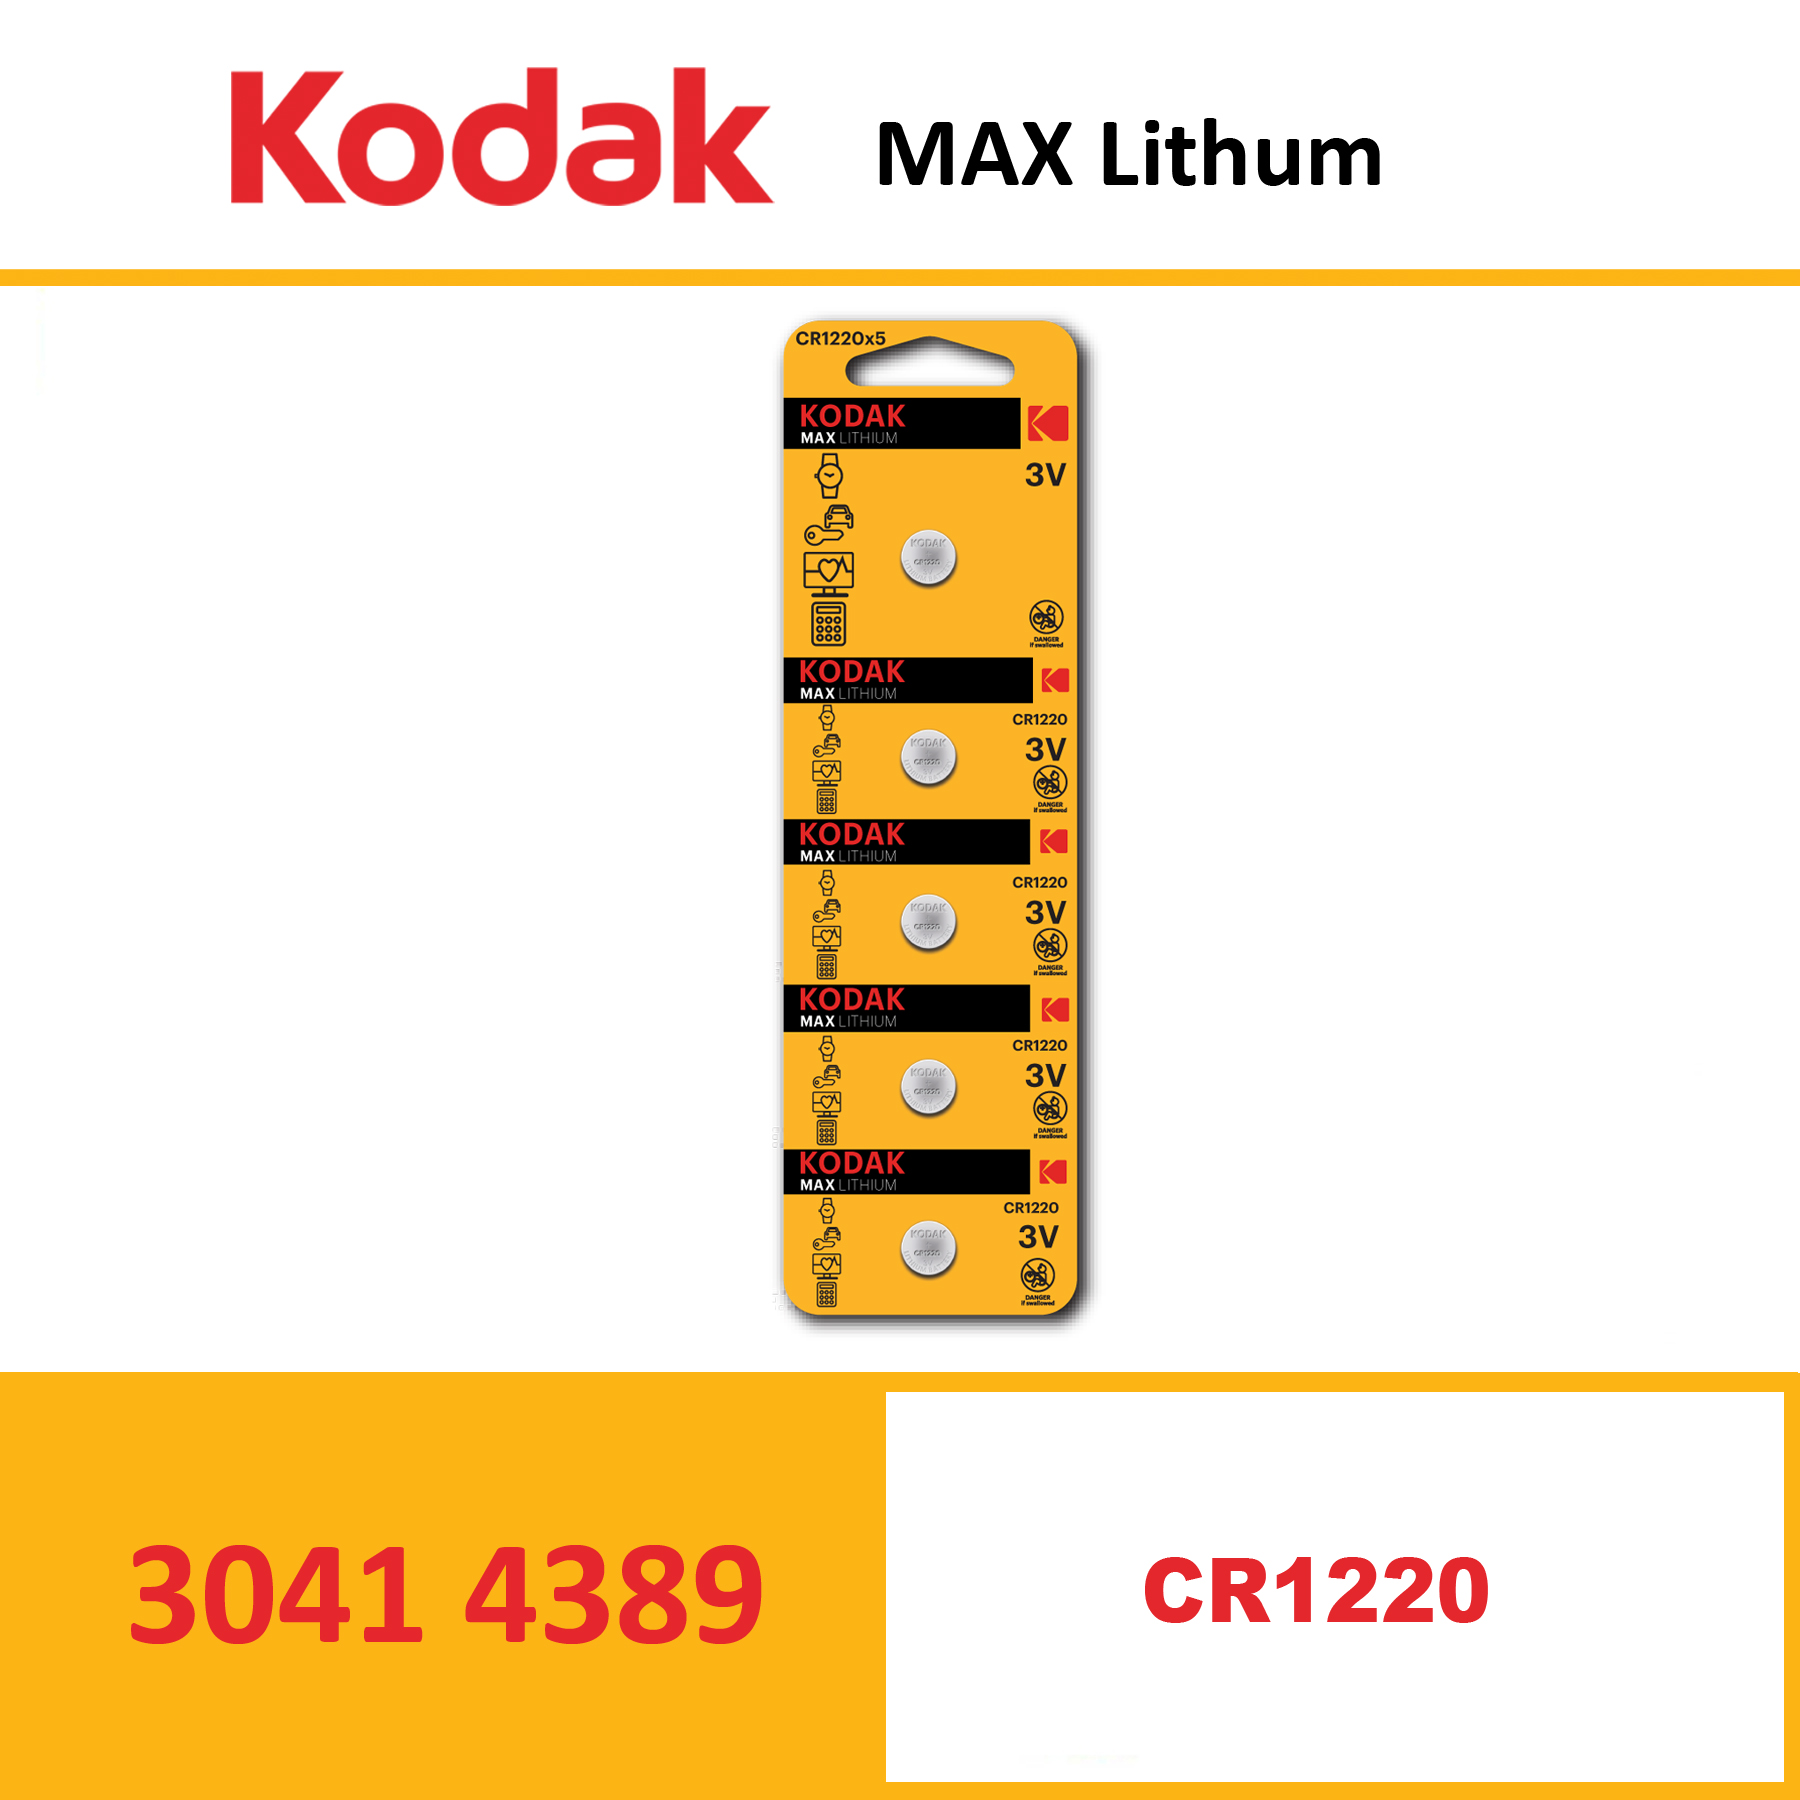 KODAK KCR1220 MAX Lithium coin cell Pack of 5 Piece